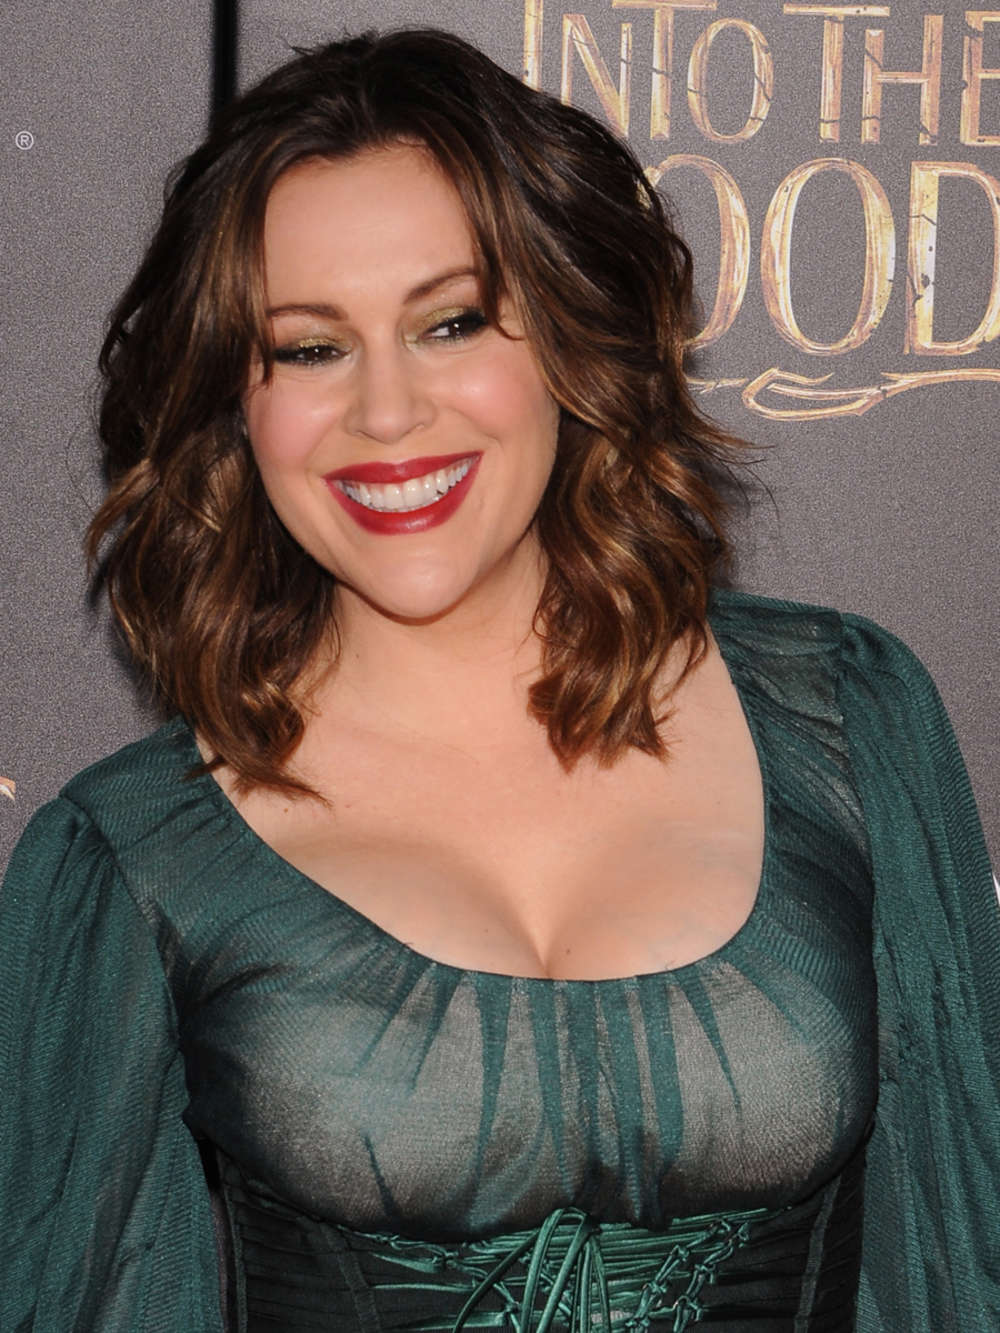 alyssa milano celebrities - photo #37